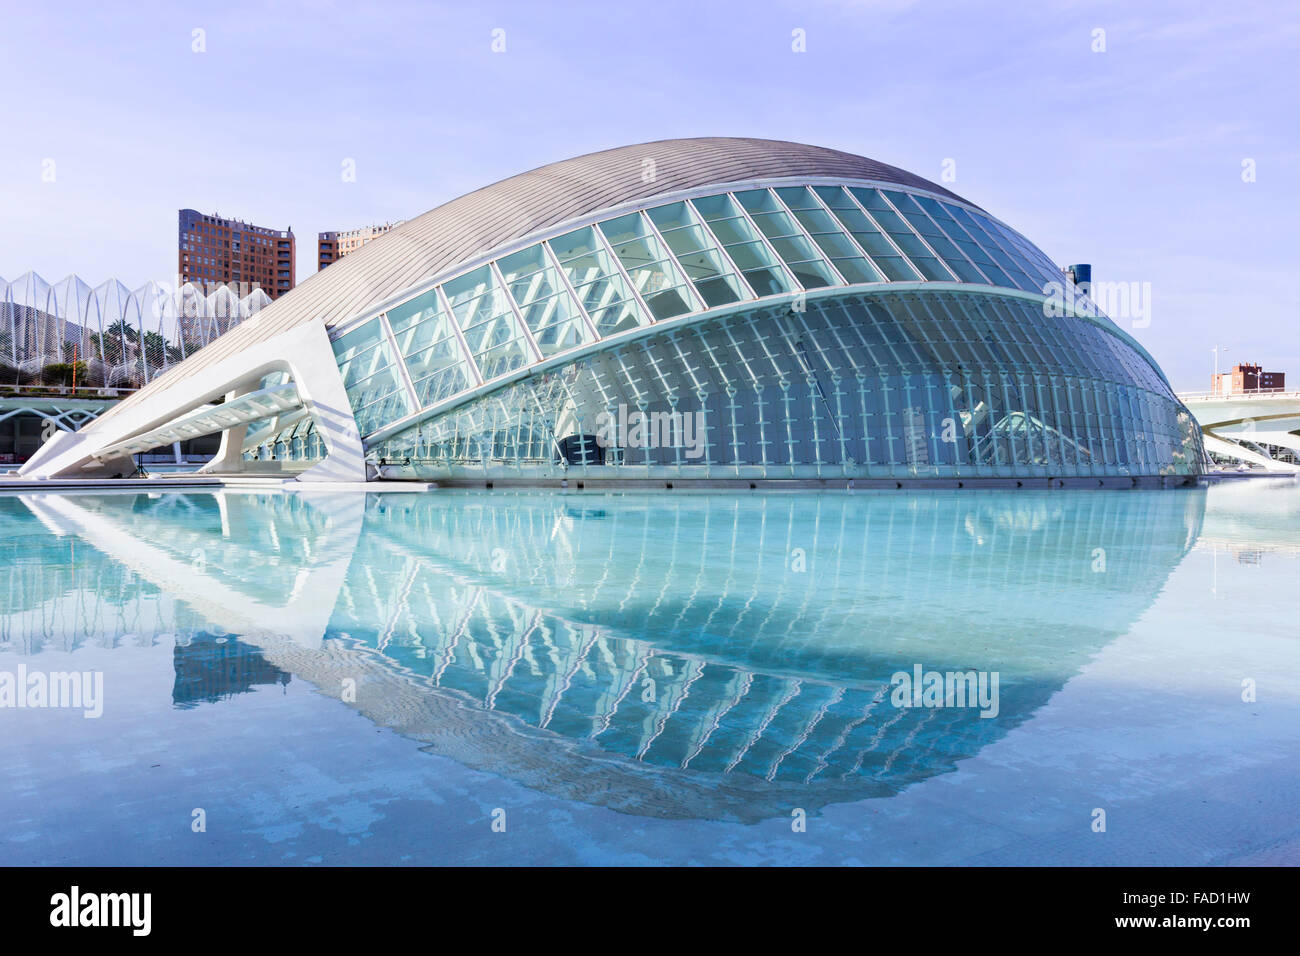 Valencia, Spain. The City of Arts and Sciences.  L'Hemisfèric. - Stock Image